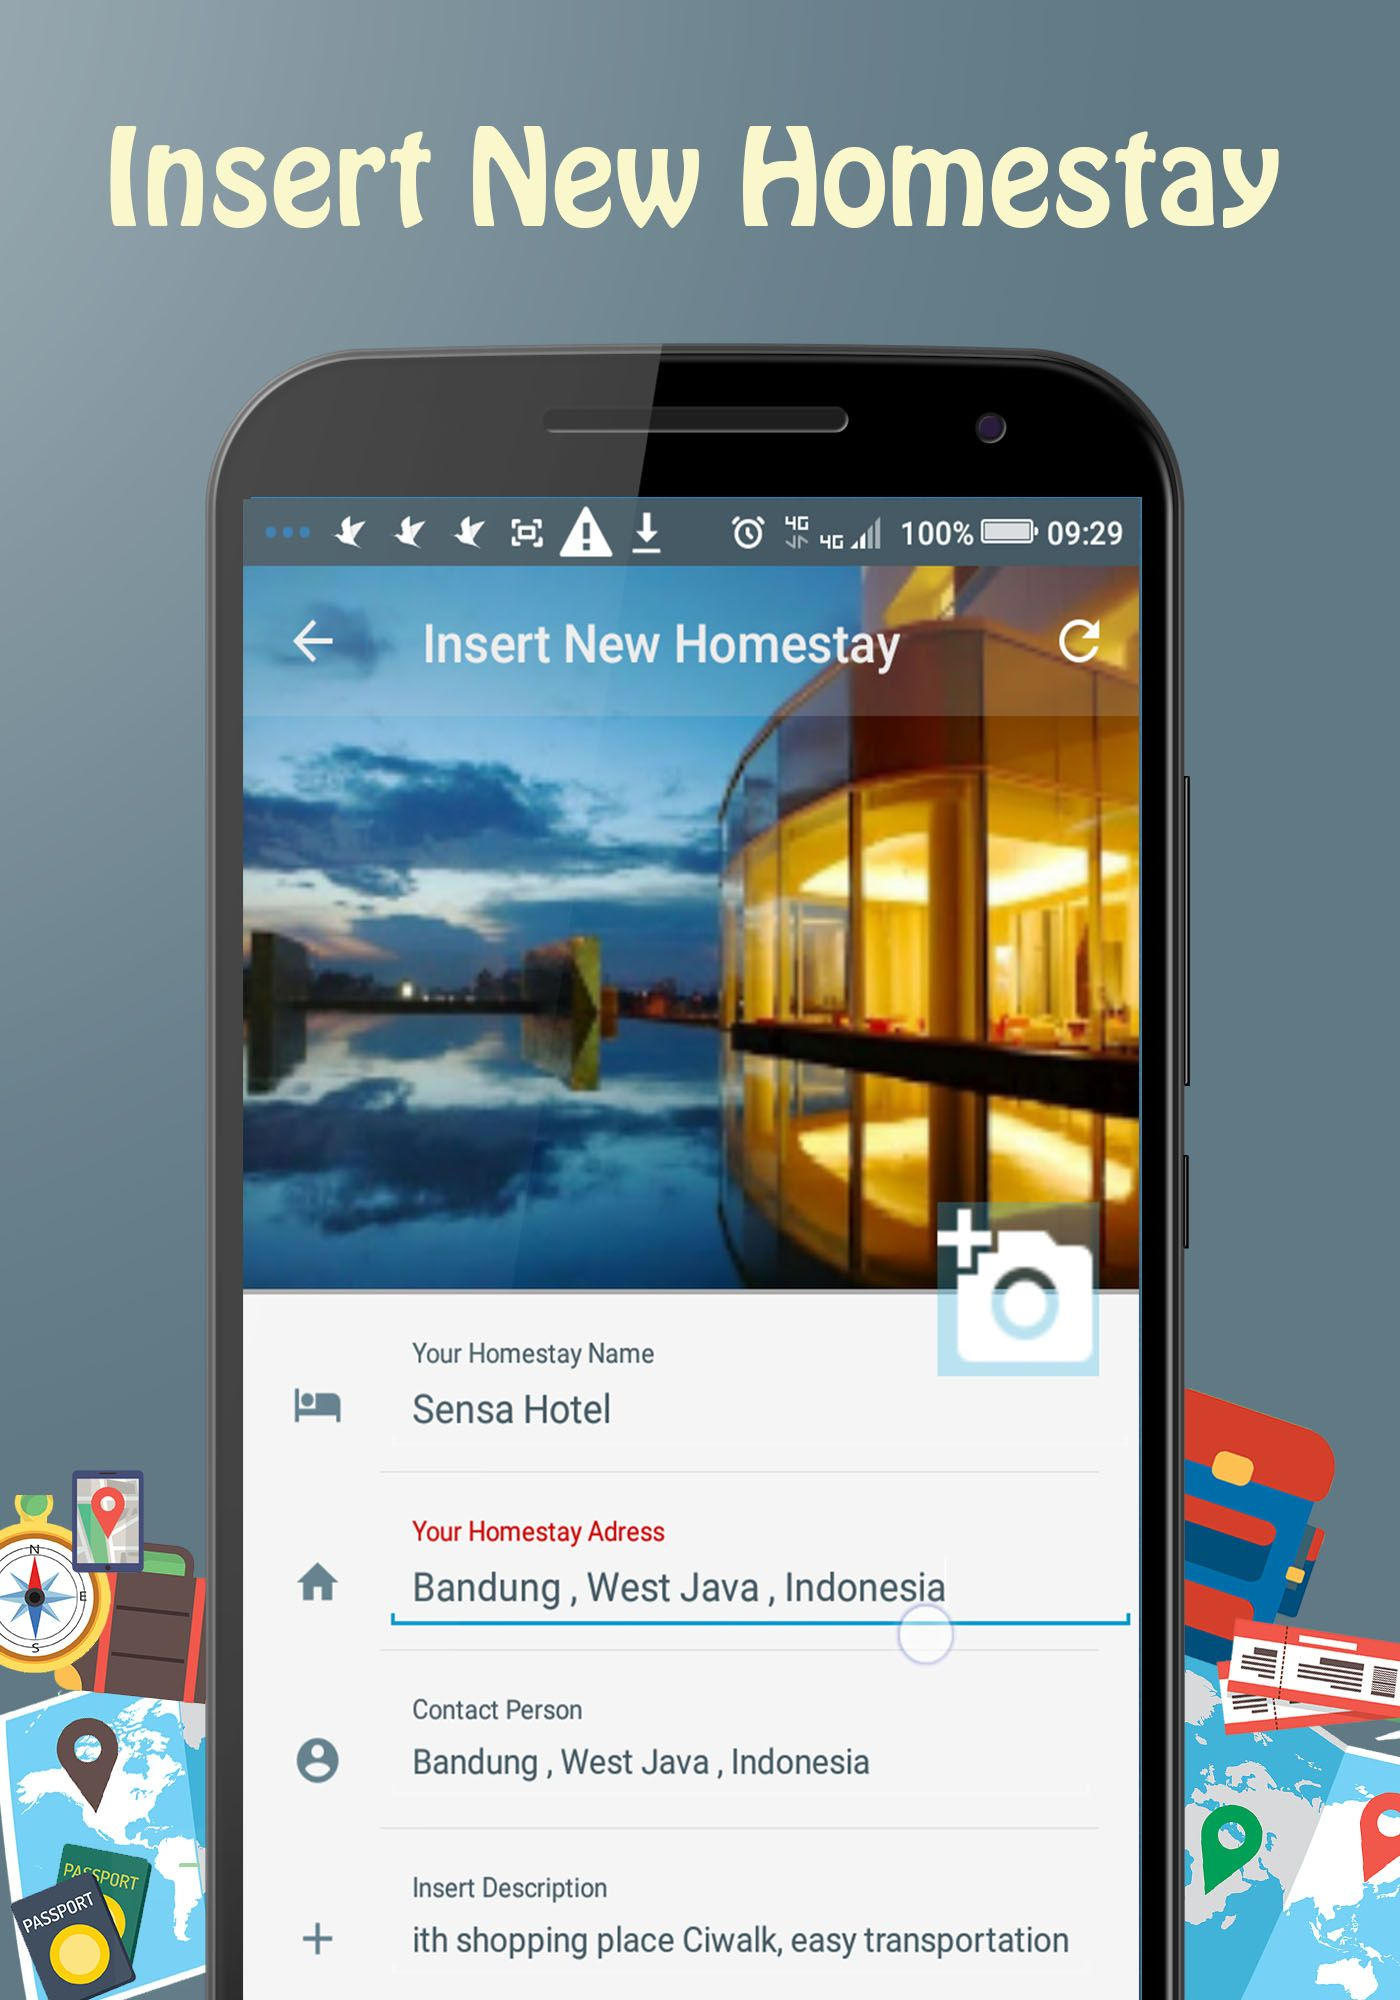 Backpacker - Android Travel App Screenshot 6